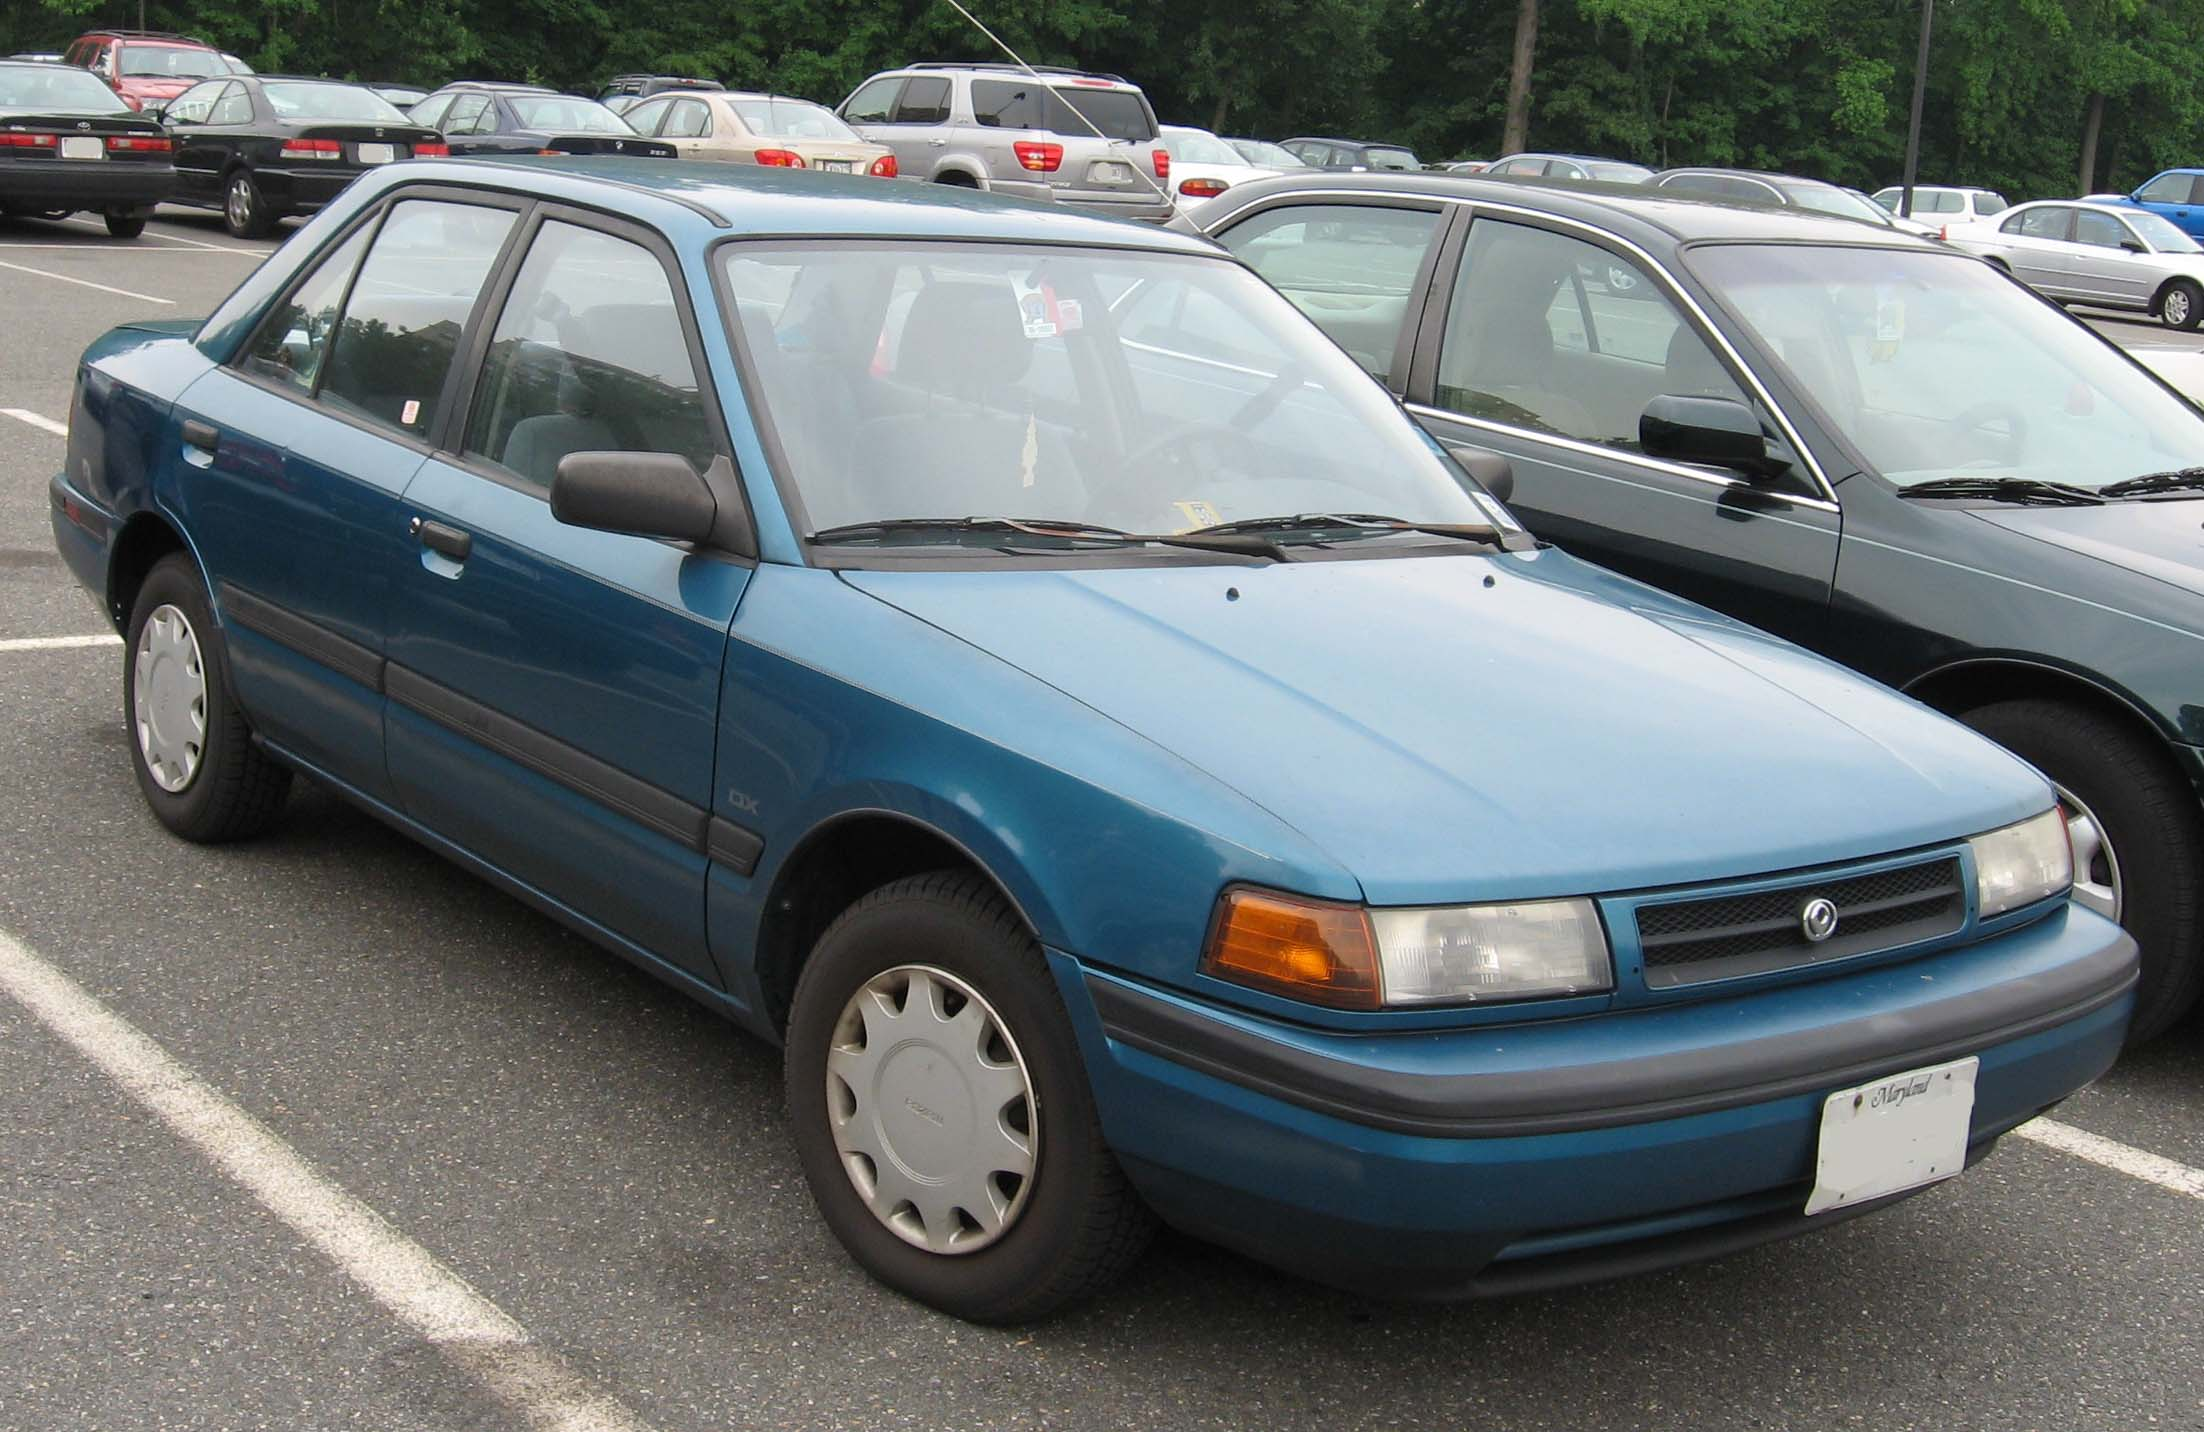 Gas Classic: 1989-1993 Mazda Protege – Seen on the Street…